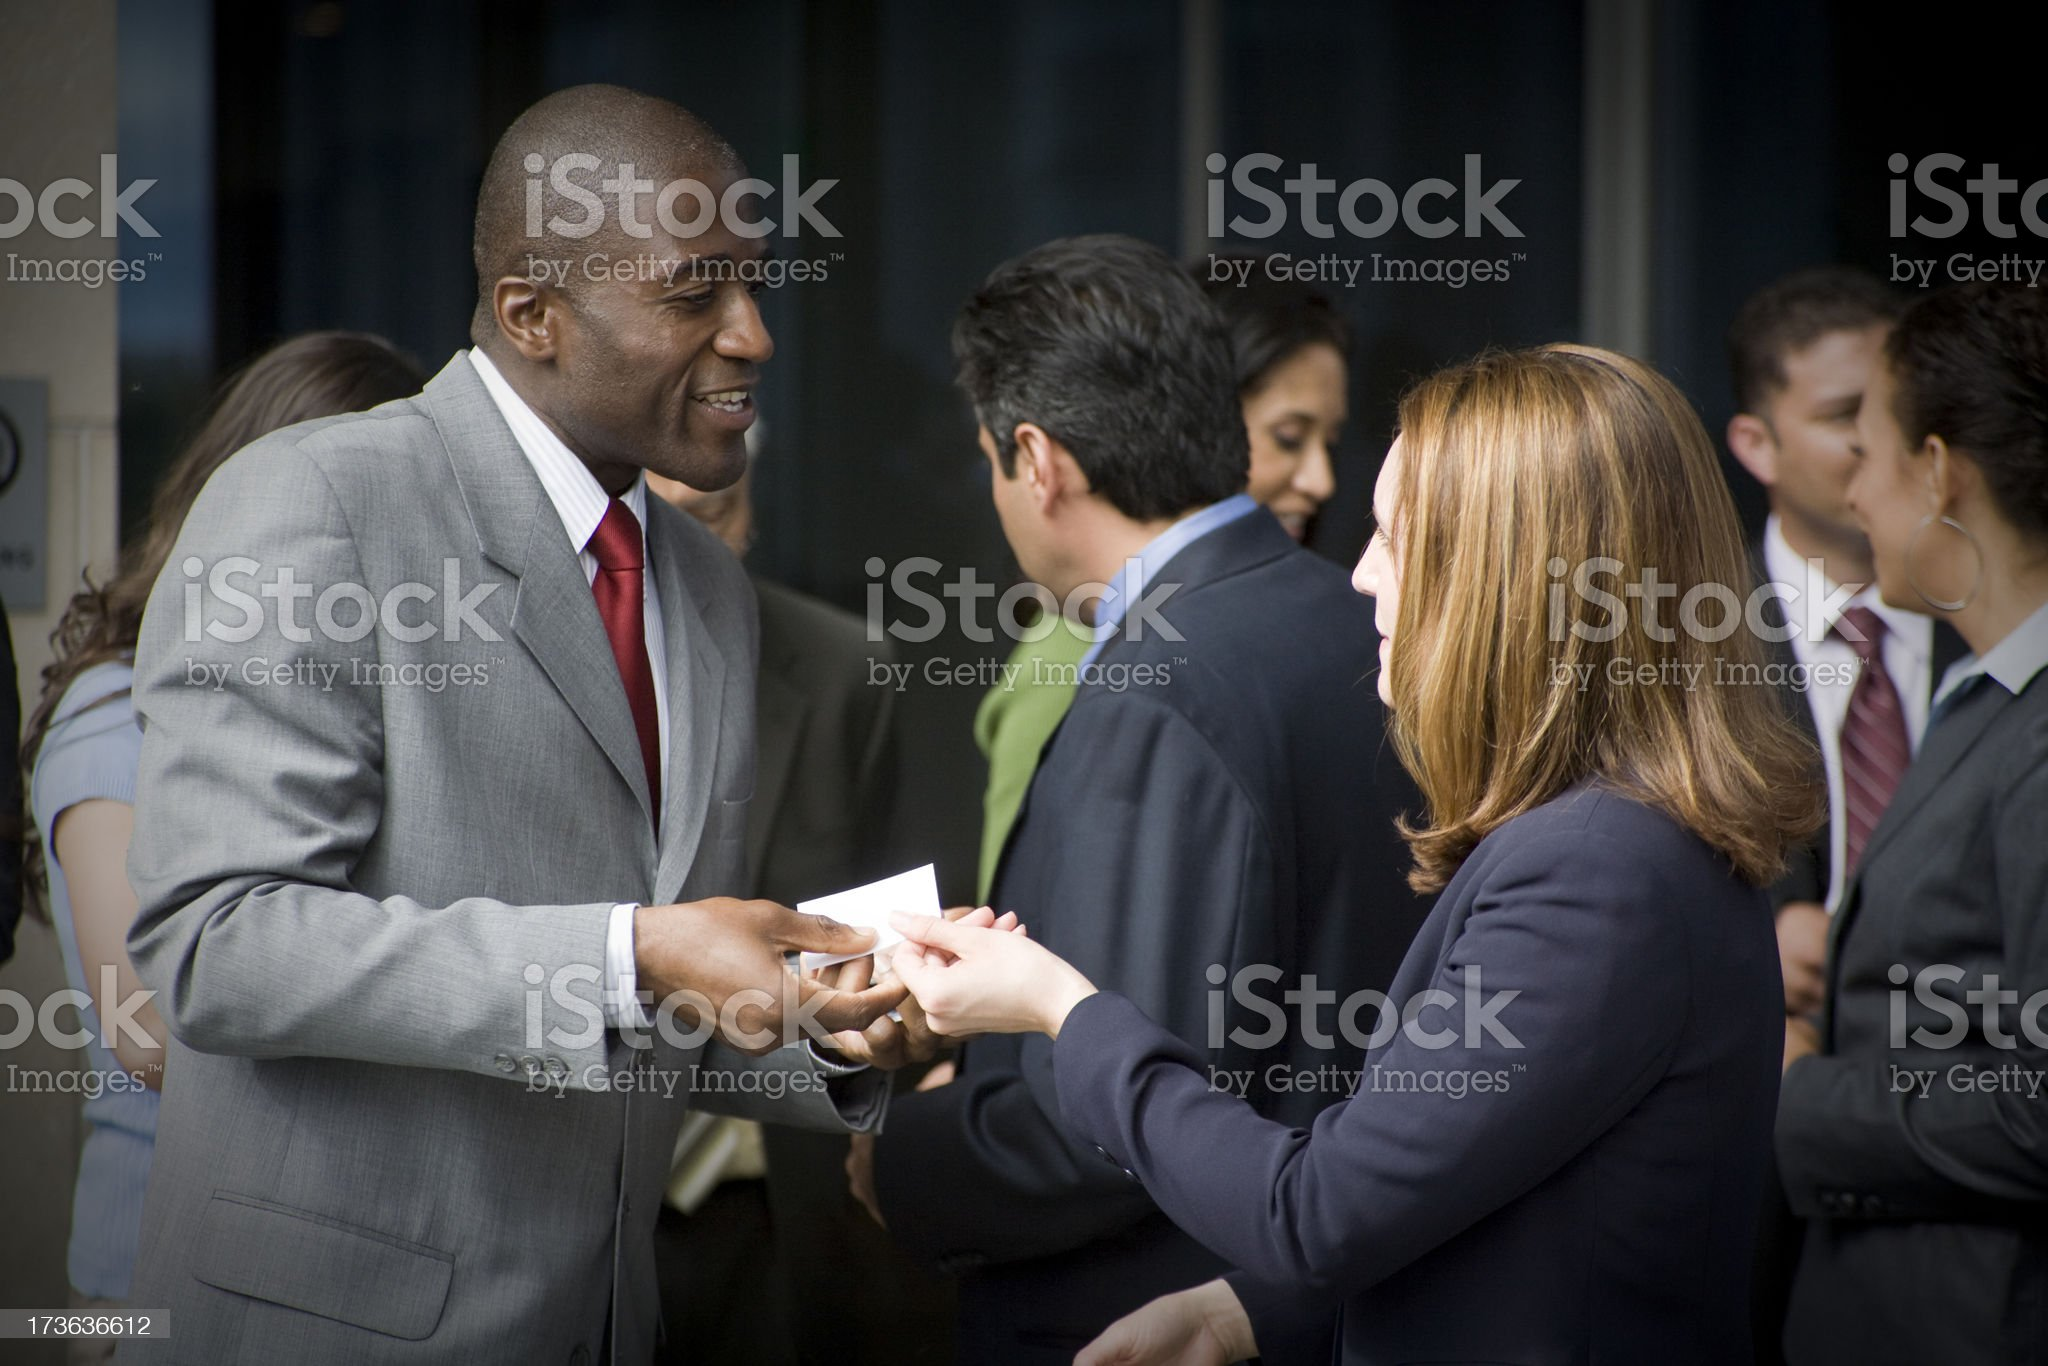 Man handing out his business card at a meet and greet royalty-free stock photo